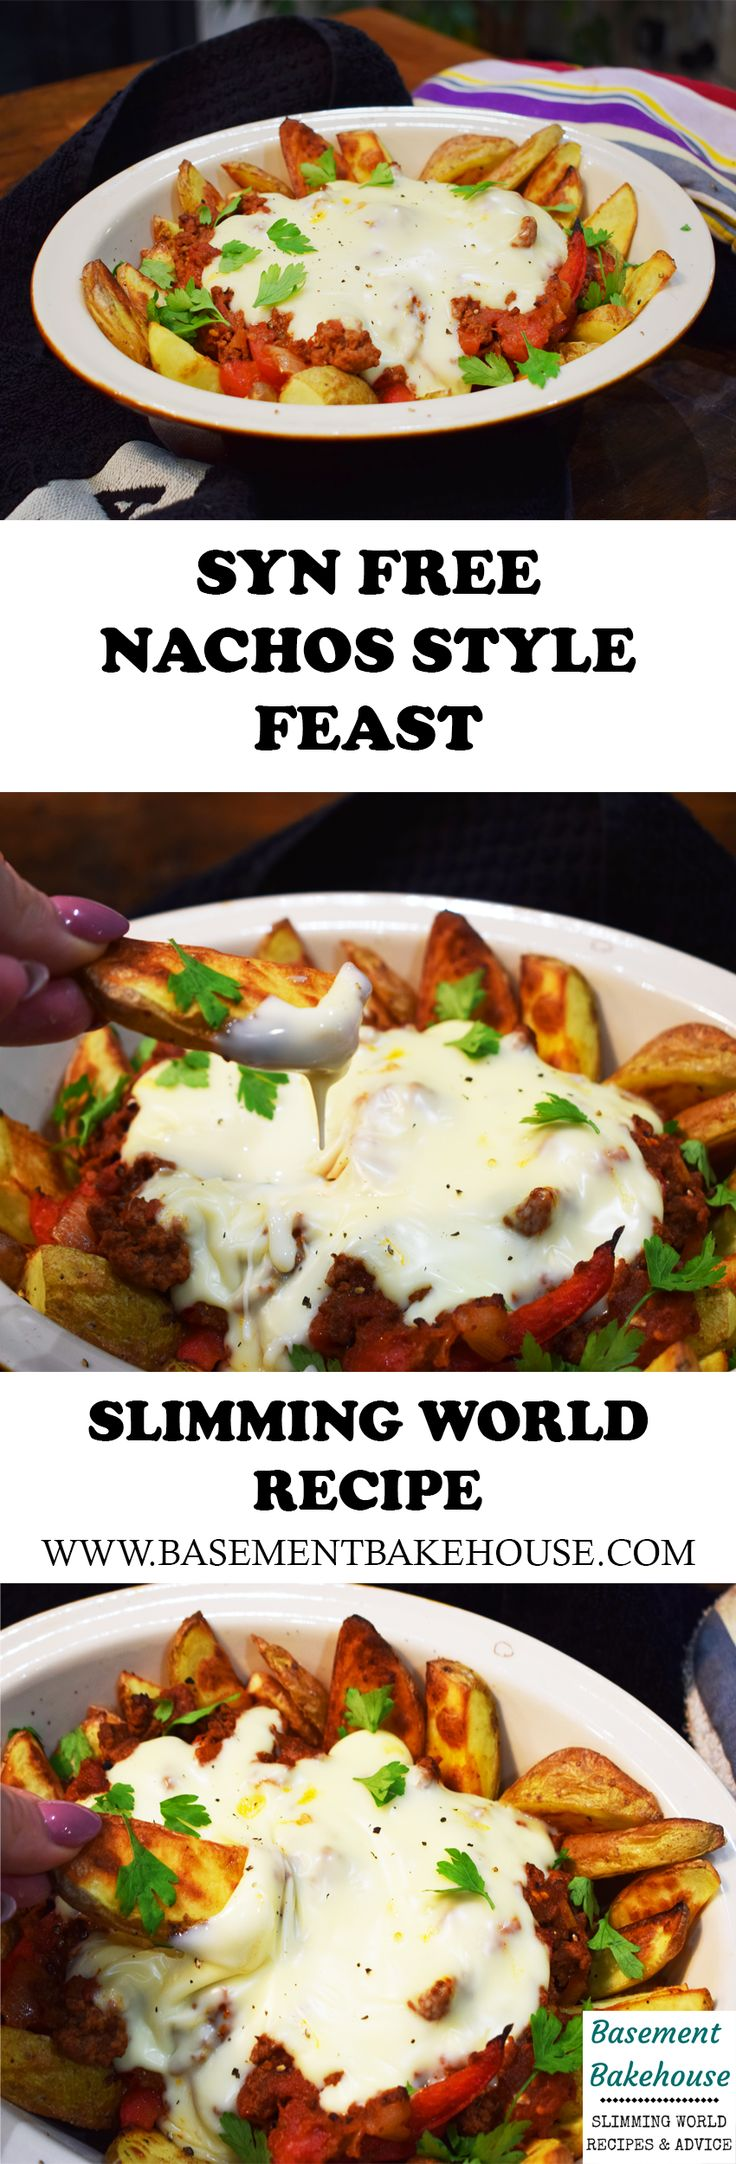 Syn Free - Nachos Style Feast - Slimming World - Recipe